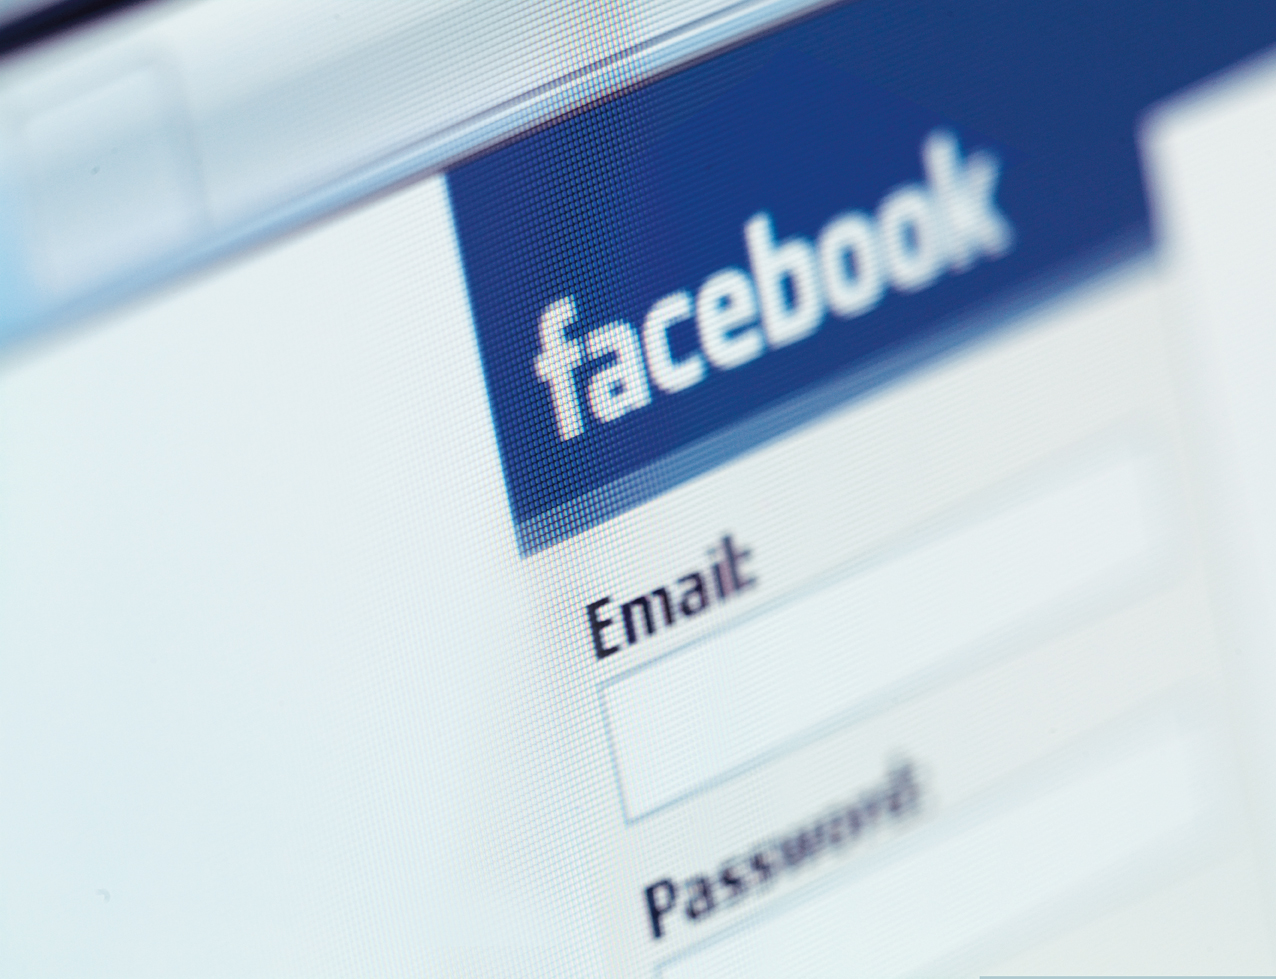 Porn and violent images infest Facebook. Have you been affected?